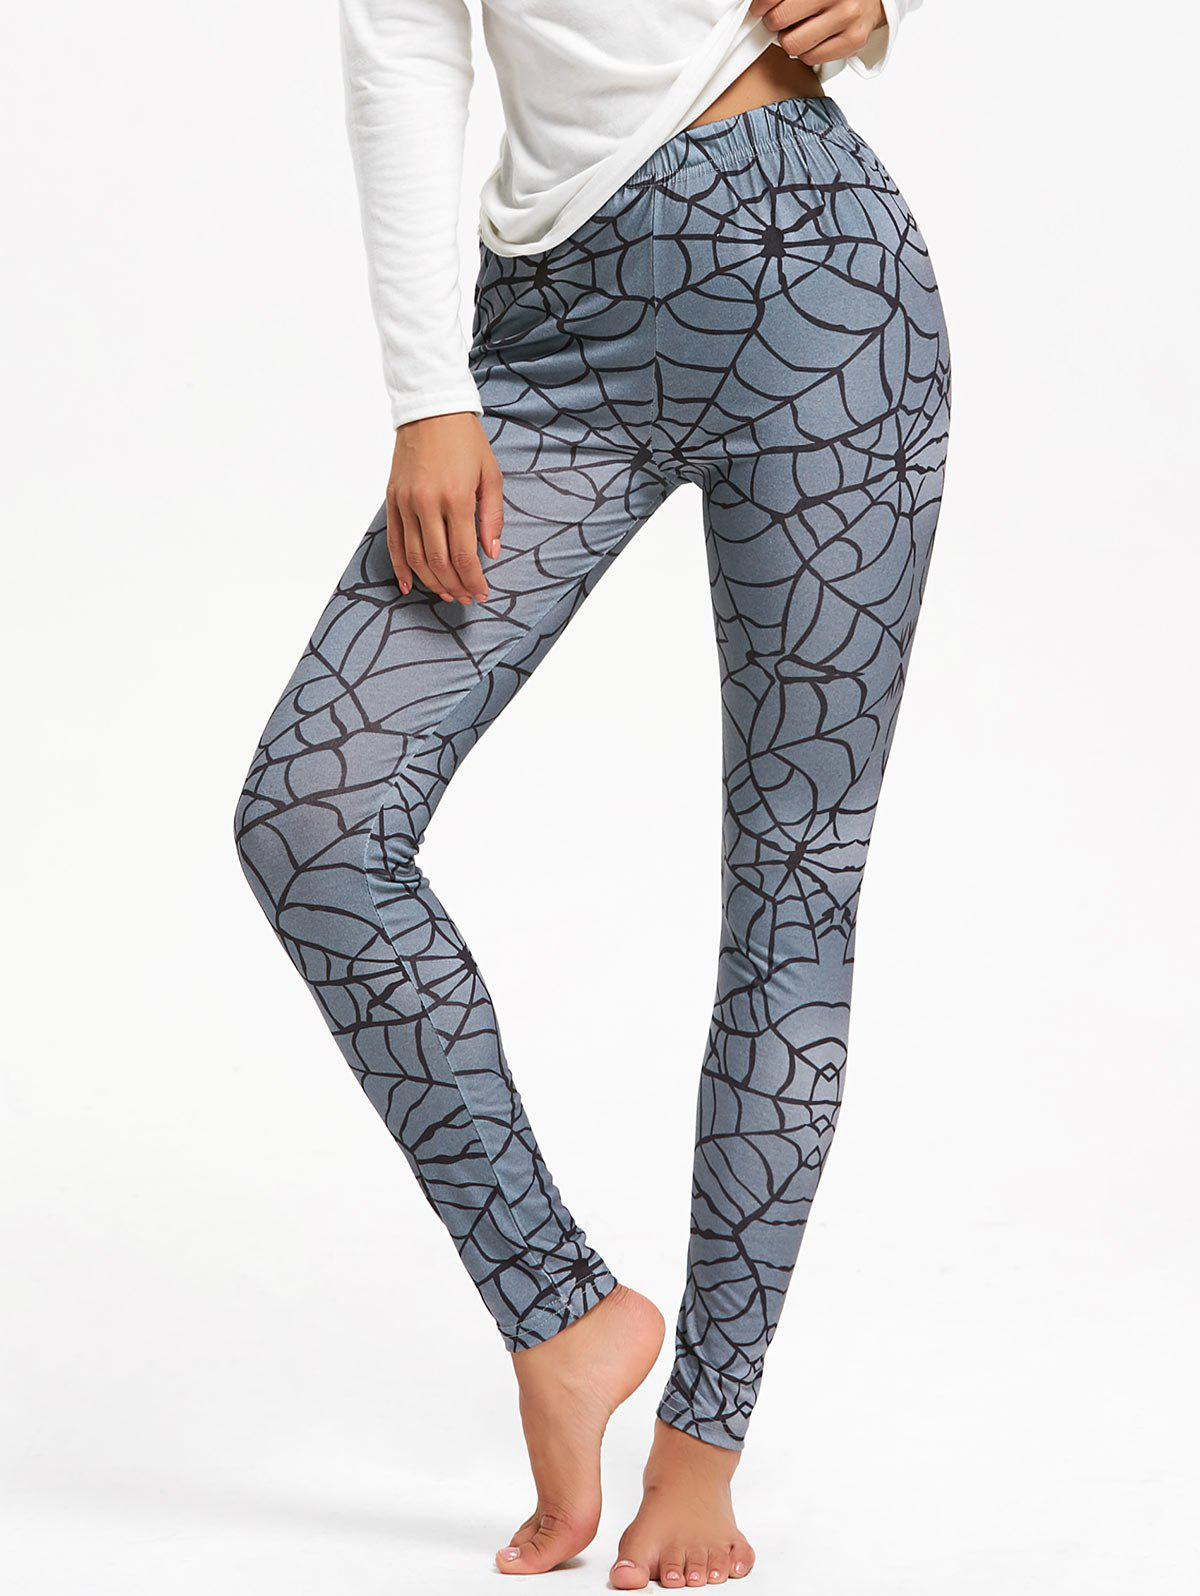 Shop Halloween Spider Web Print Leggings